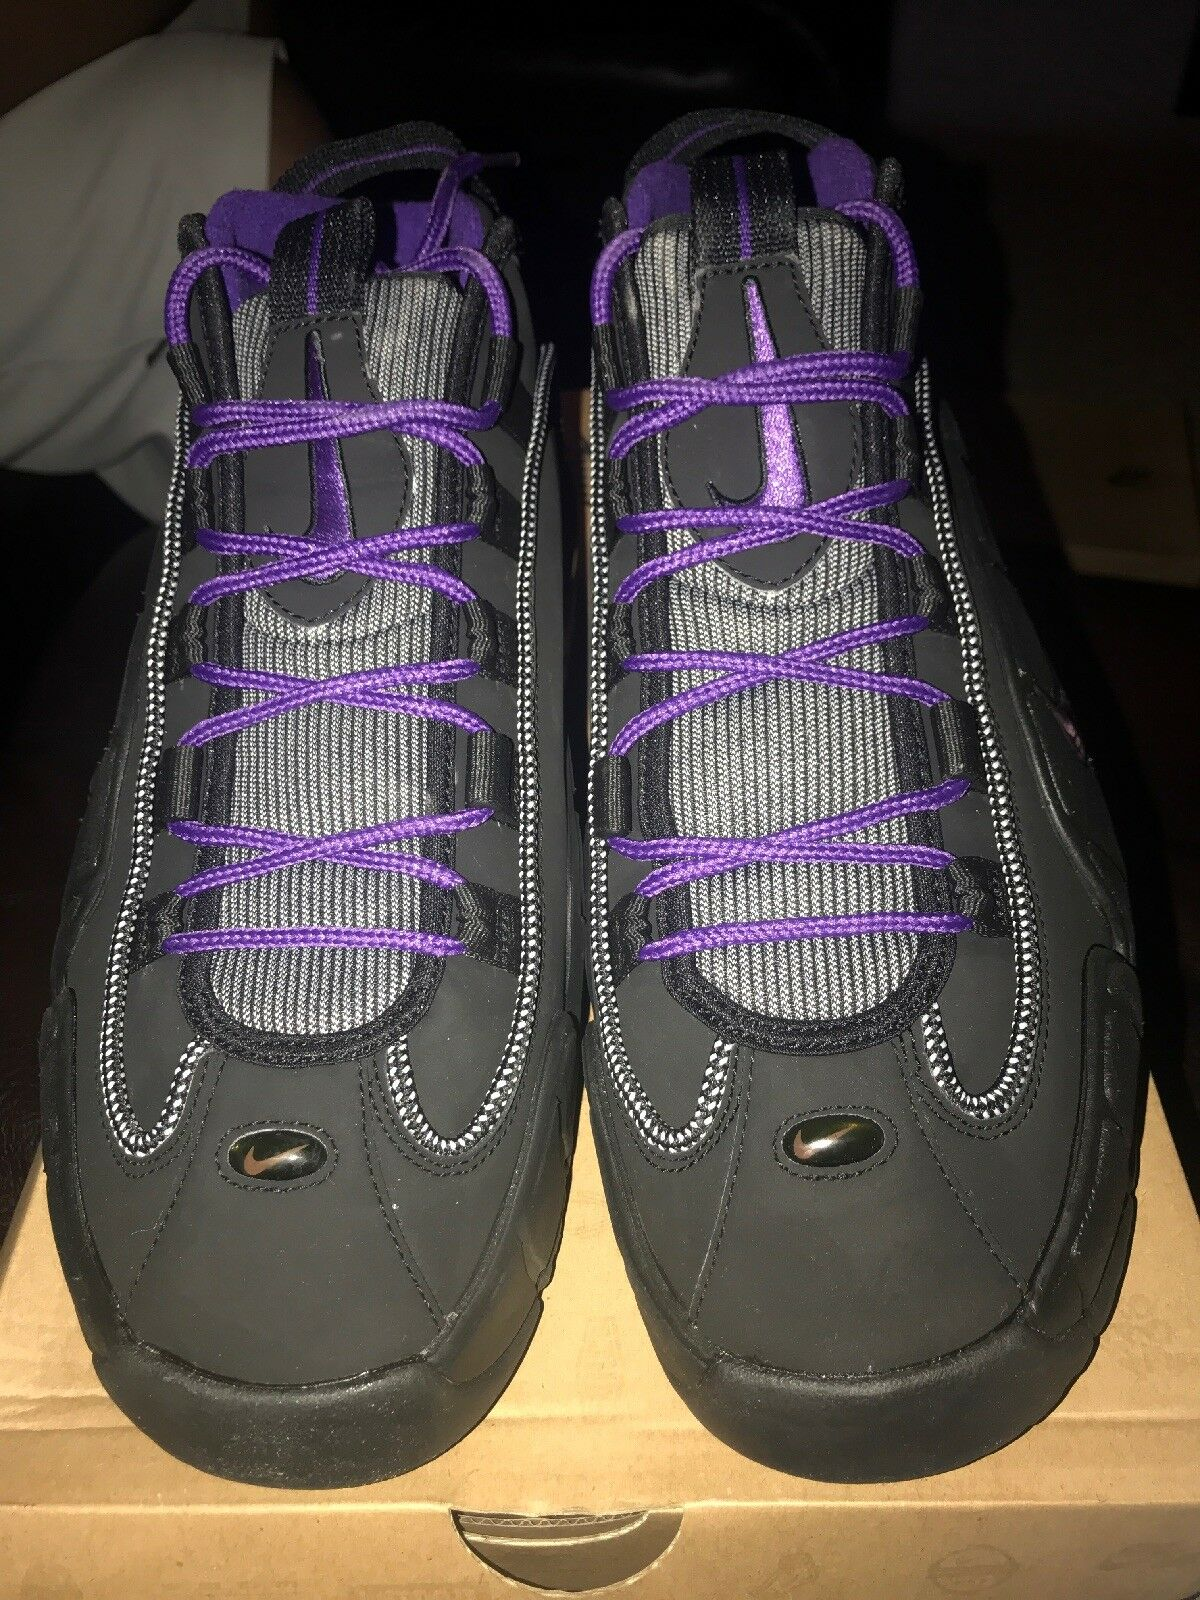 DS Nike Air Max Penny 1 Phoenix Suns - 311089-002 Size 11